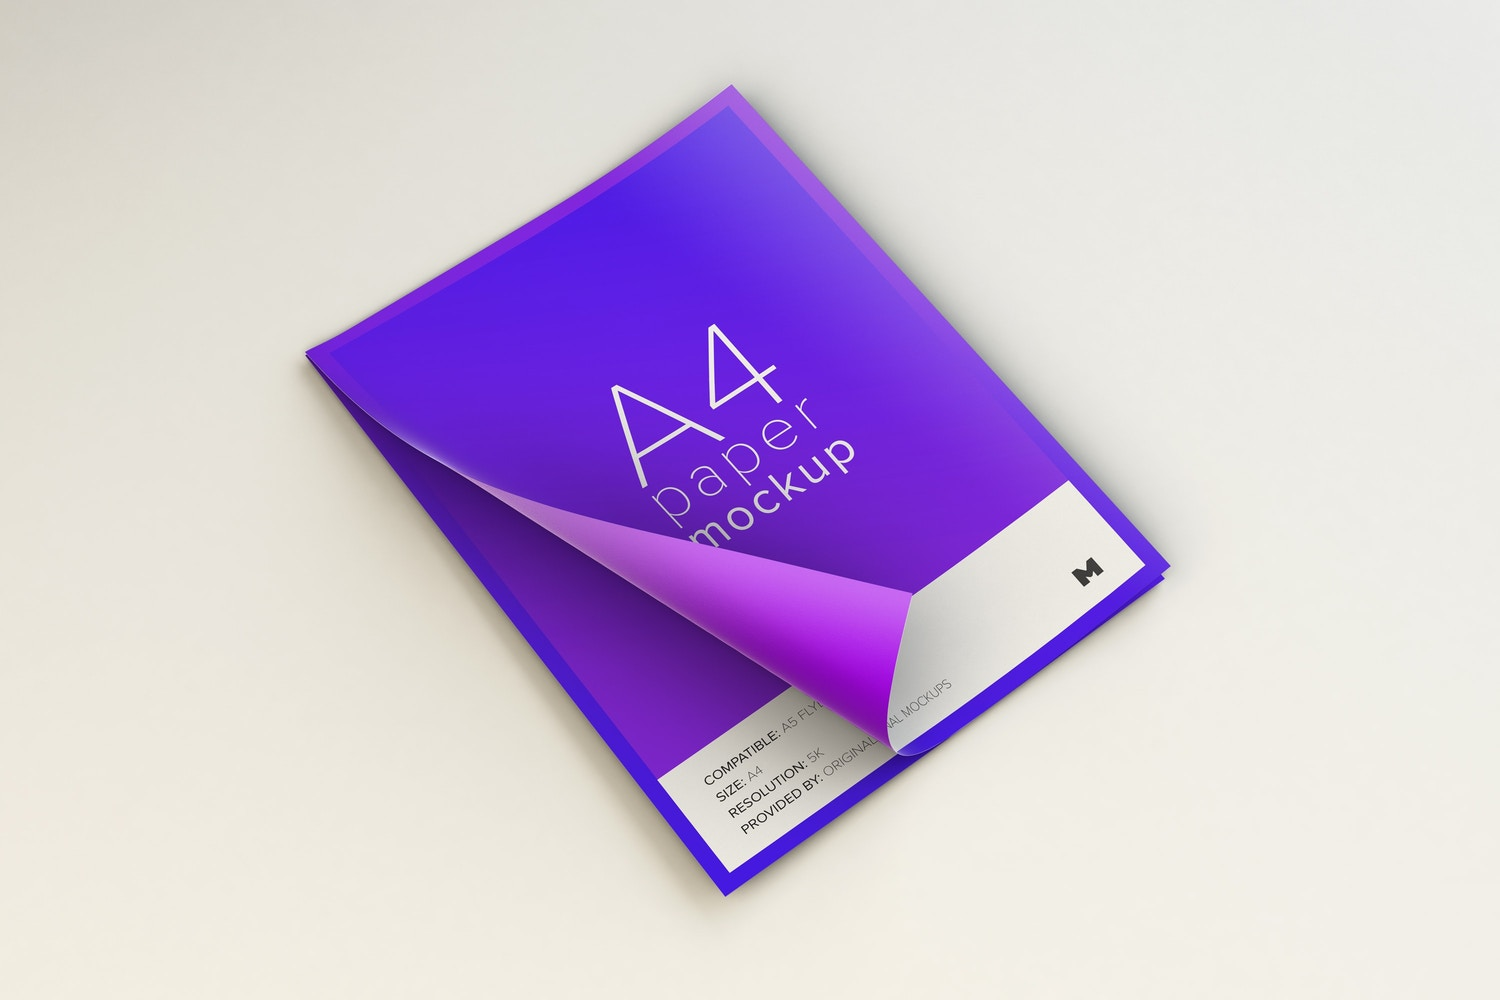 Flying A4 Paper Mockup 02 by Original Mockups on Original Mockups